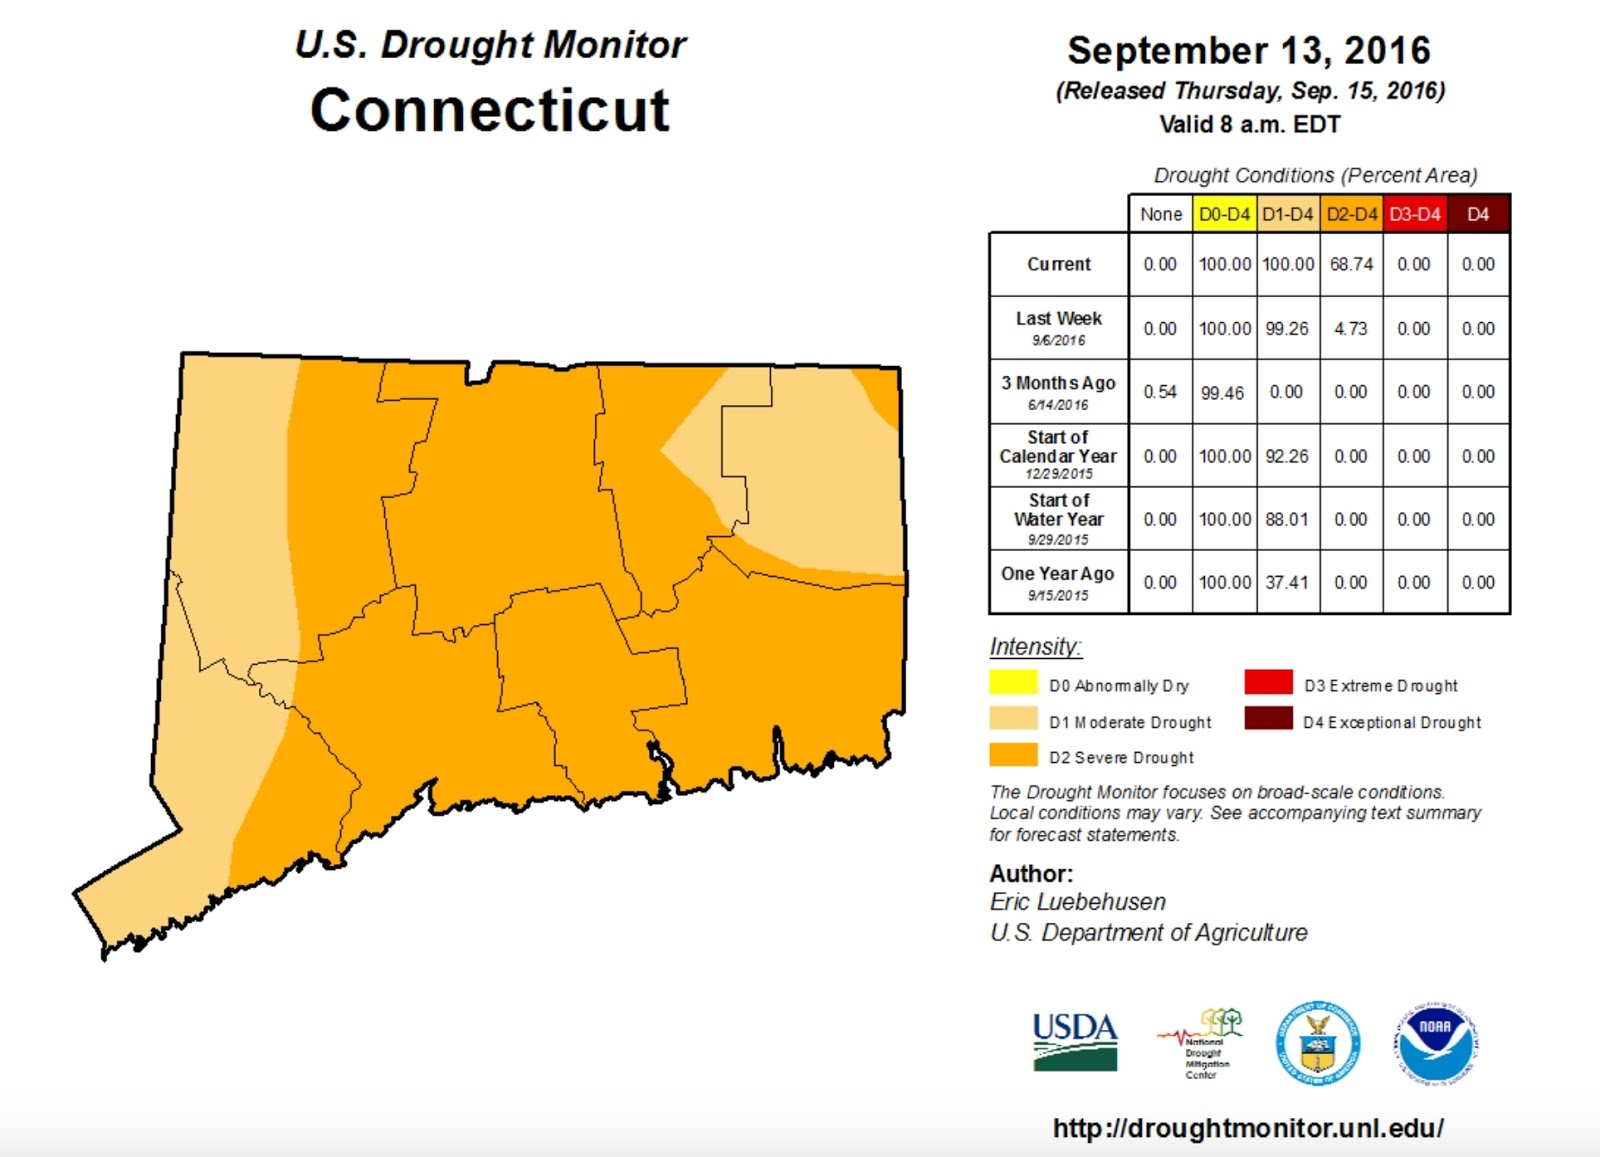 been a really dry year in connecticut and the united states drought monitor website shows our region of connecticut to be in the severe drought zone